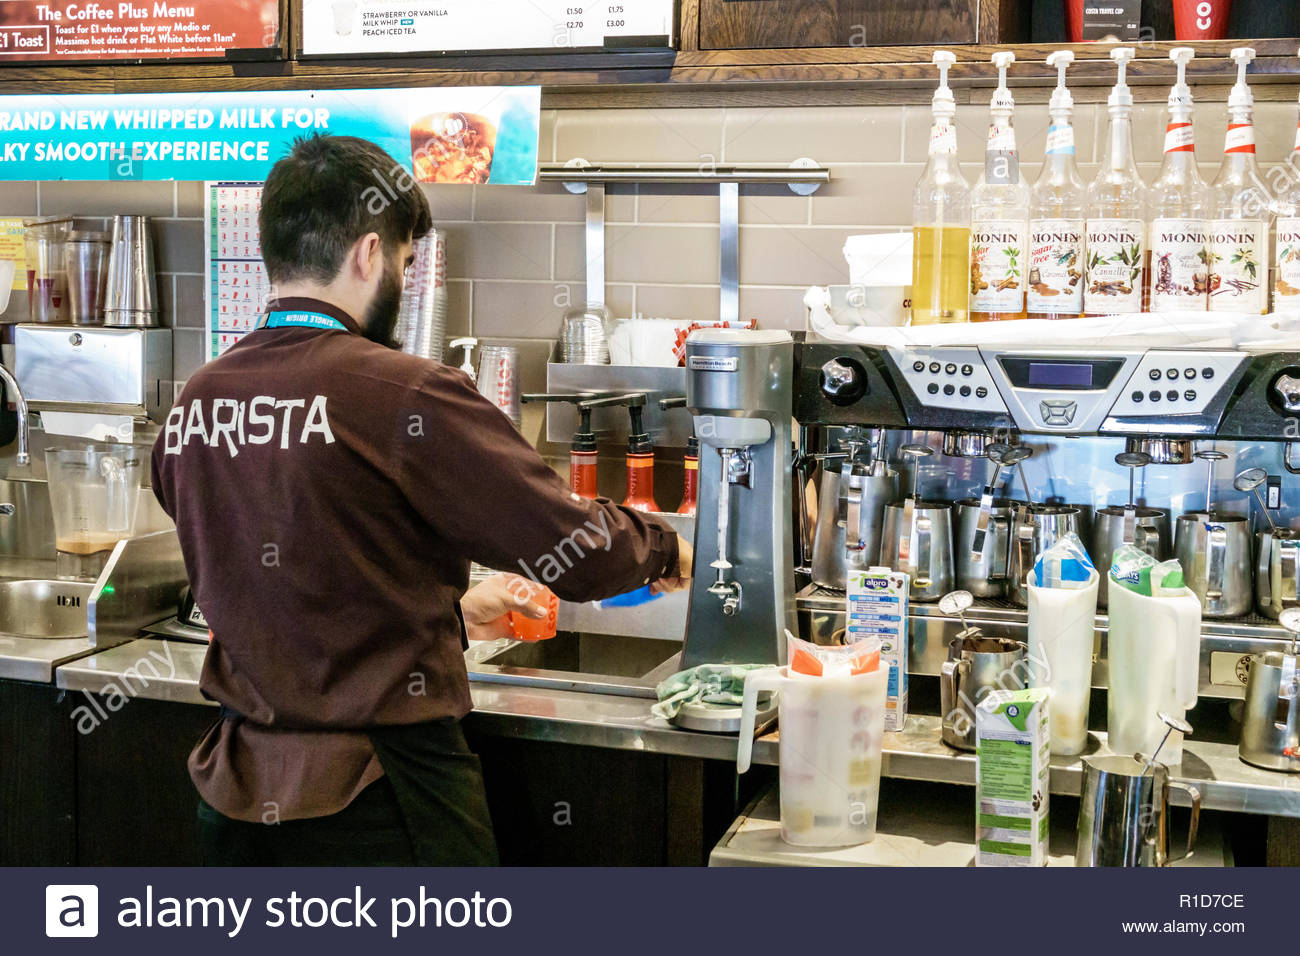 London England United Kingdom Great Britain Lambeth South Bank Costa Coffee cafe coffeehouse barista espresso machine making beverage man counter atte - Stock Image